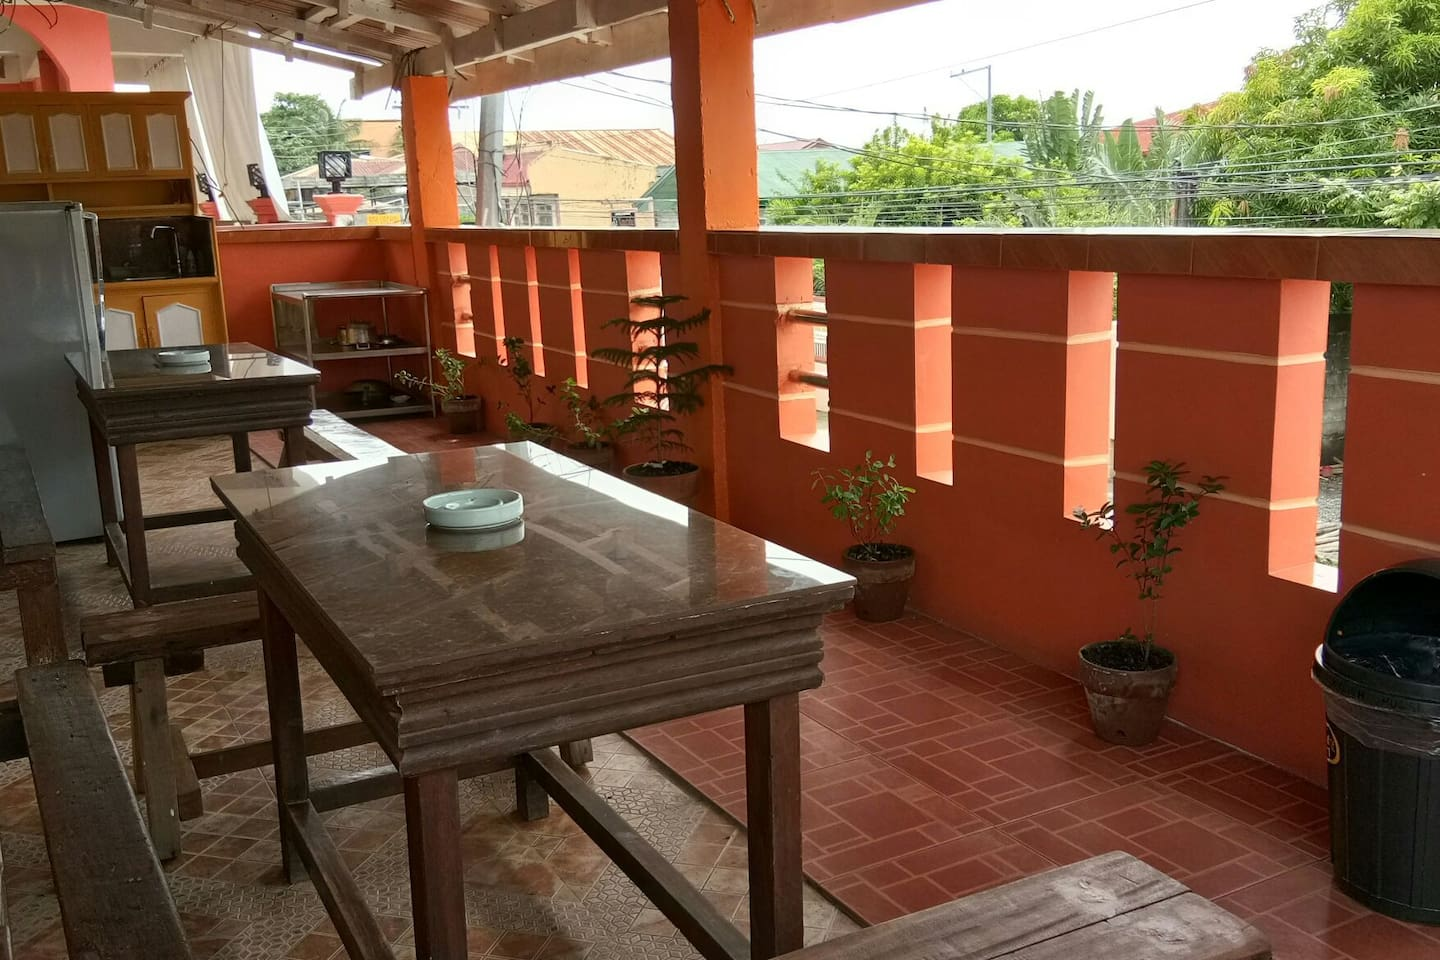 Unit#2 2nd flr terrace,cooking area Free cooking & use of utensils 2 air-conditioning rooms ,2 bathrooms good for 8-10 guests Please confirm the availability before booking.